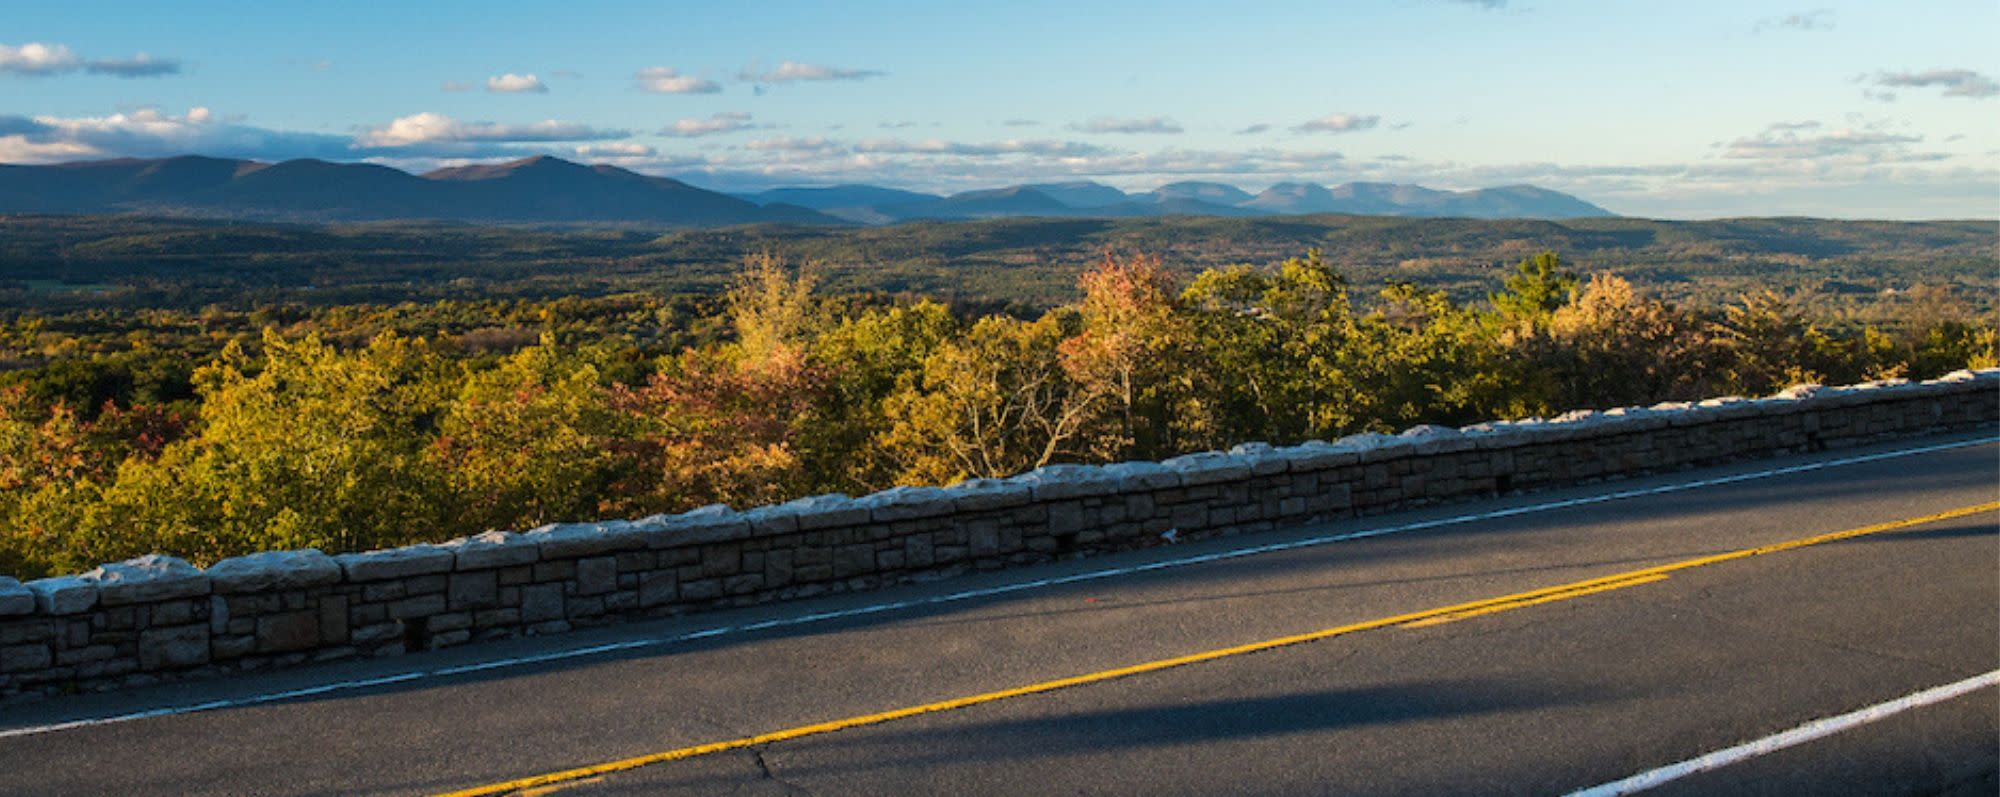 View of the Catskills along scenic Route 44/55